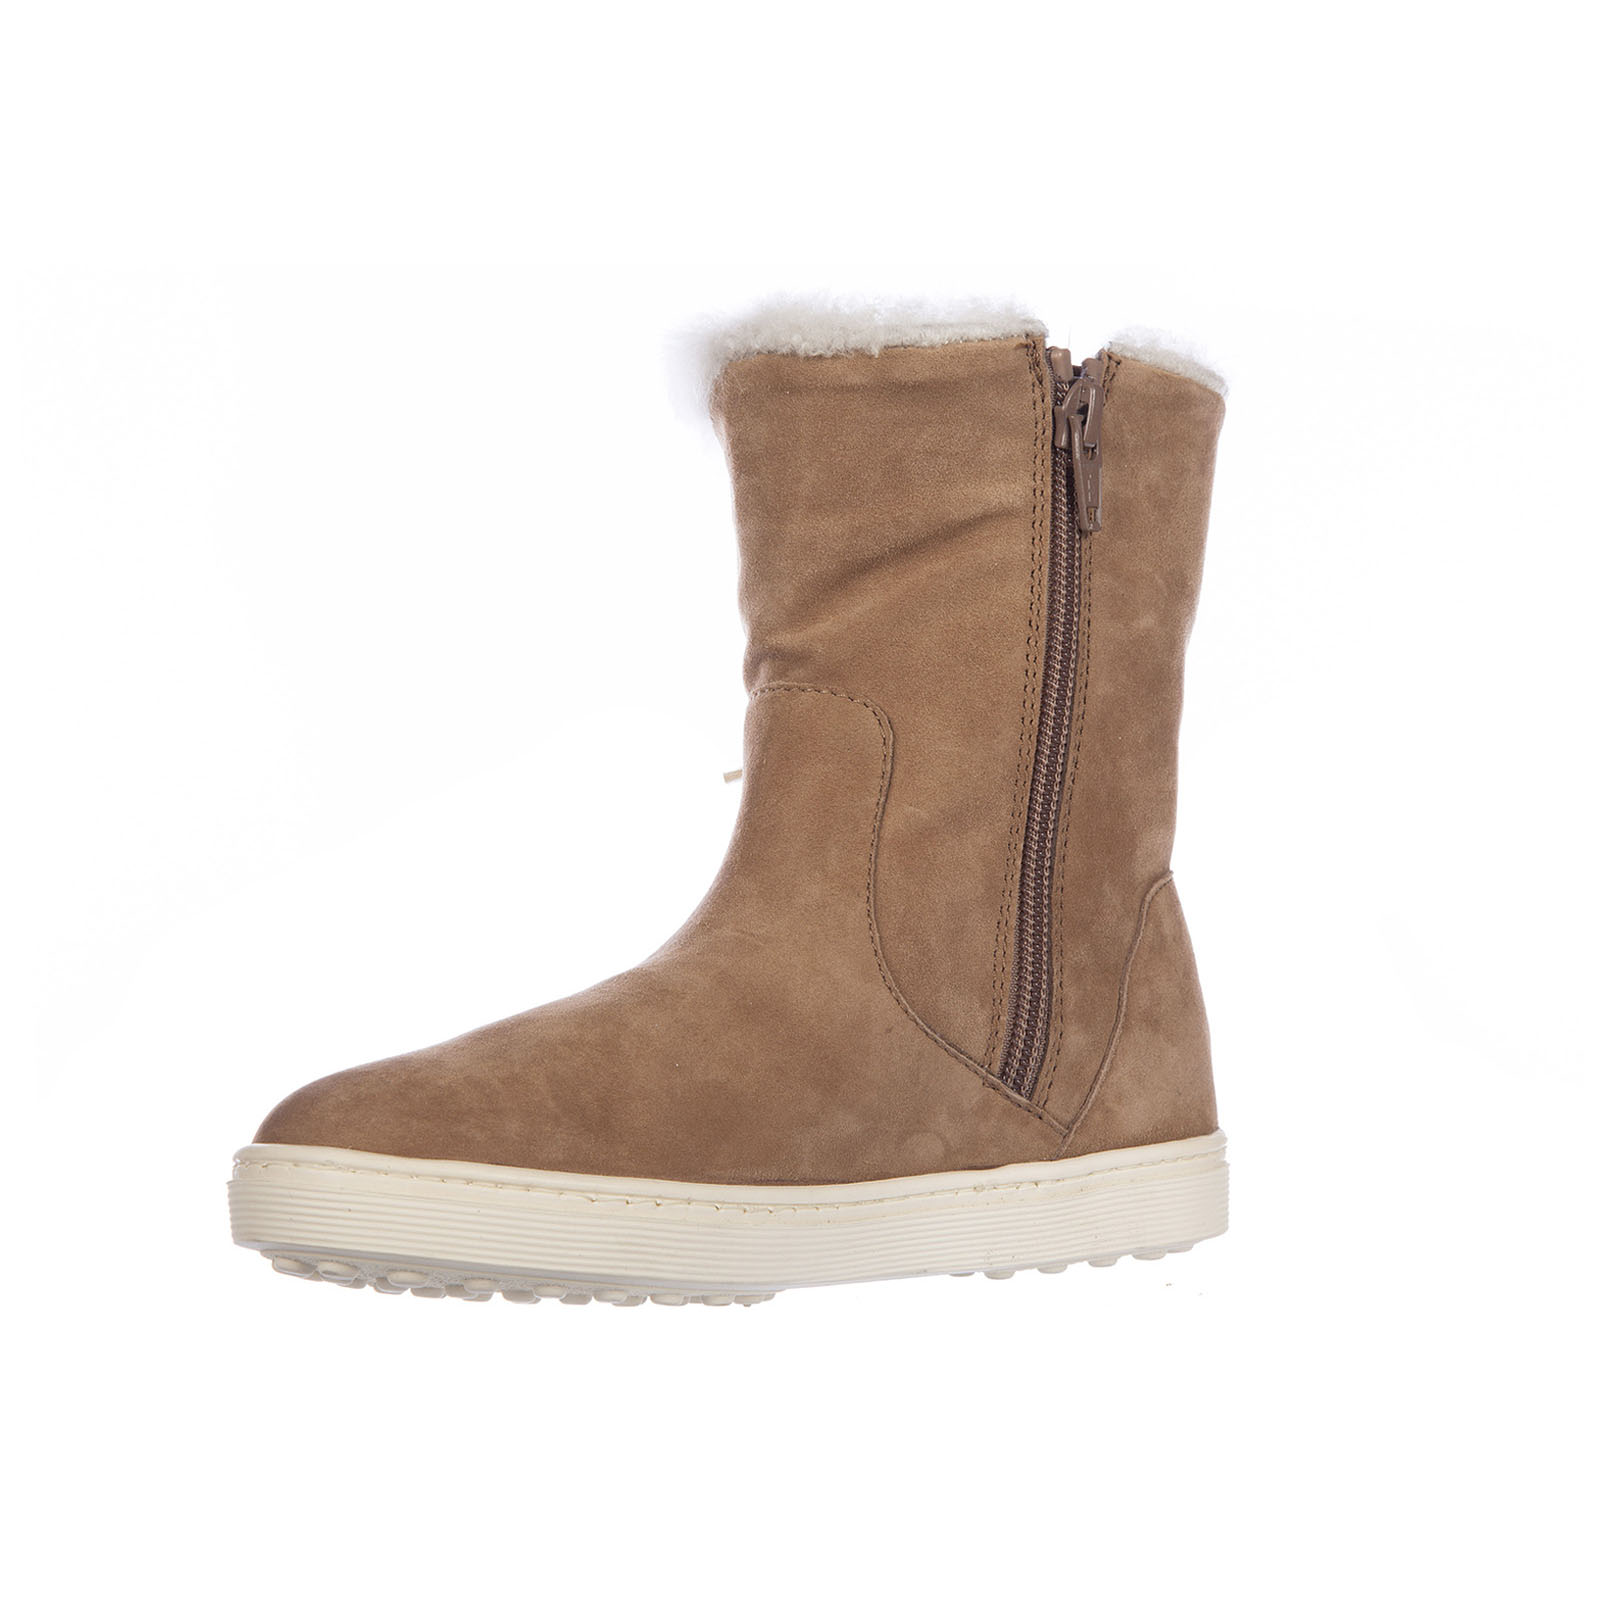 Girls shoes child boots suede leather sport cassetta